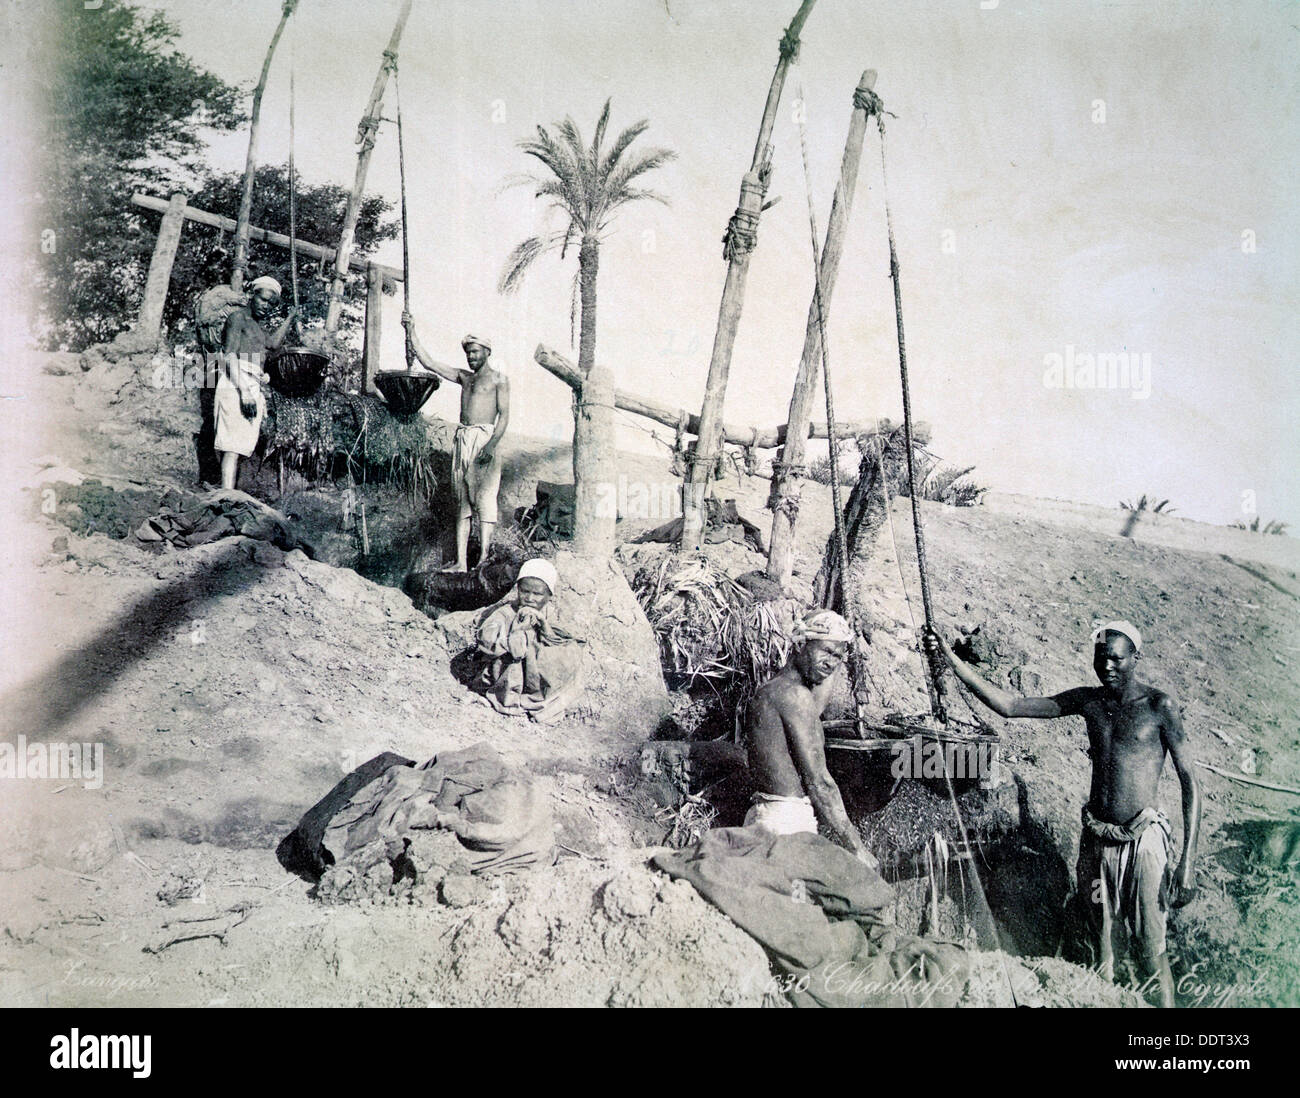 Shadufs in Upper Egypt, late 19th century. Artist: G Lekegian - Stock Image